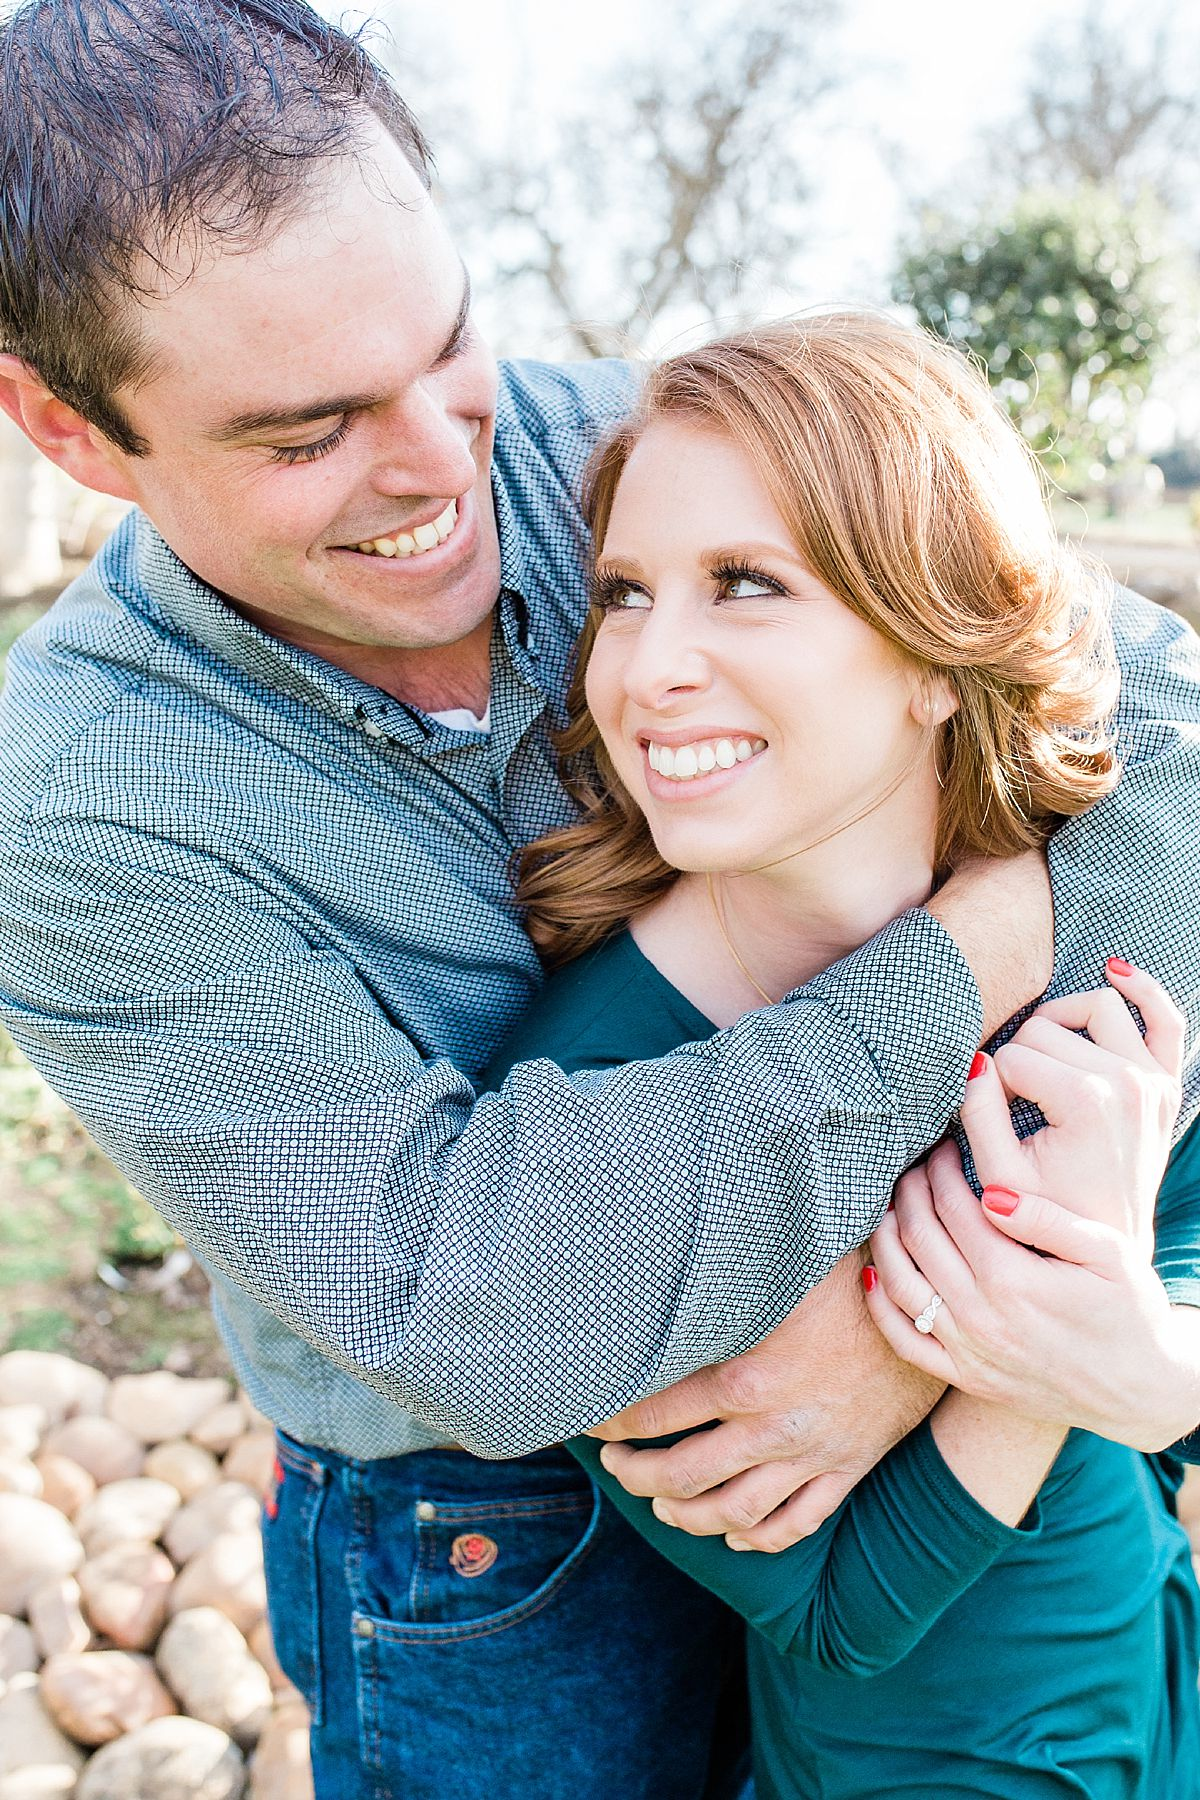 Viaggio Winery Engagement Session - Liz and TJ - Lodi Winery Wedding Photographer_0031.jpg